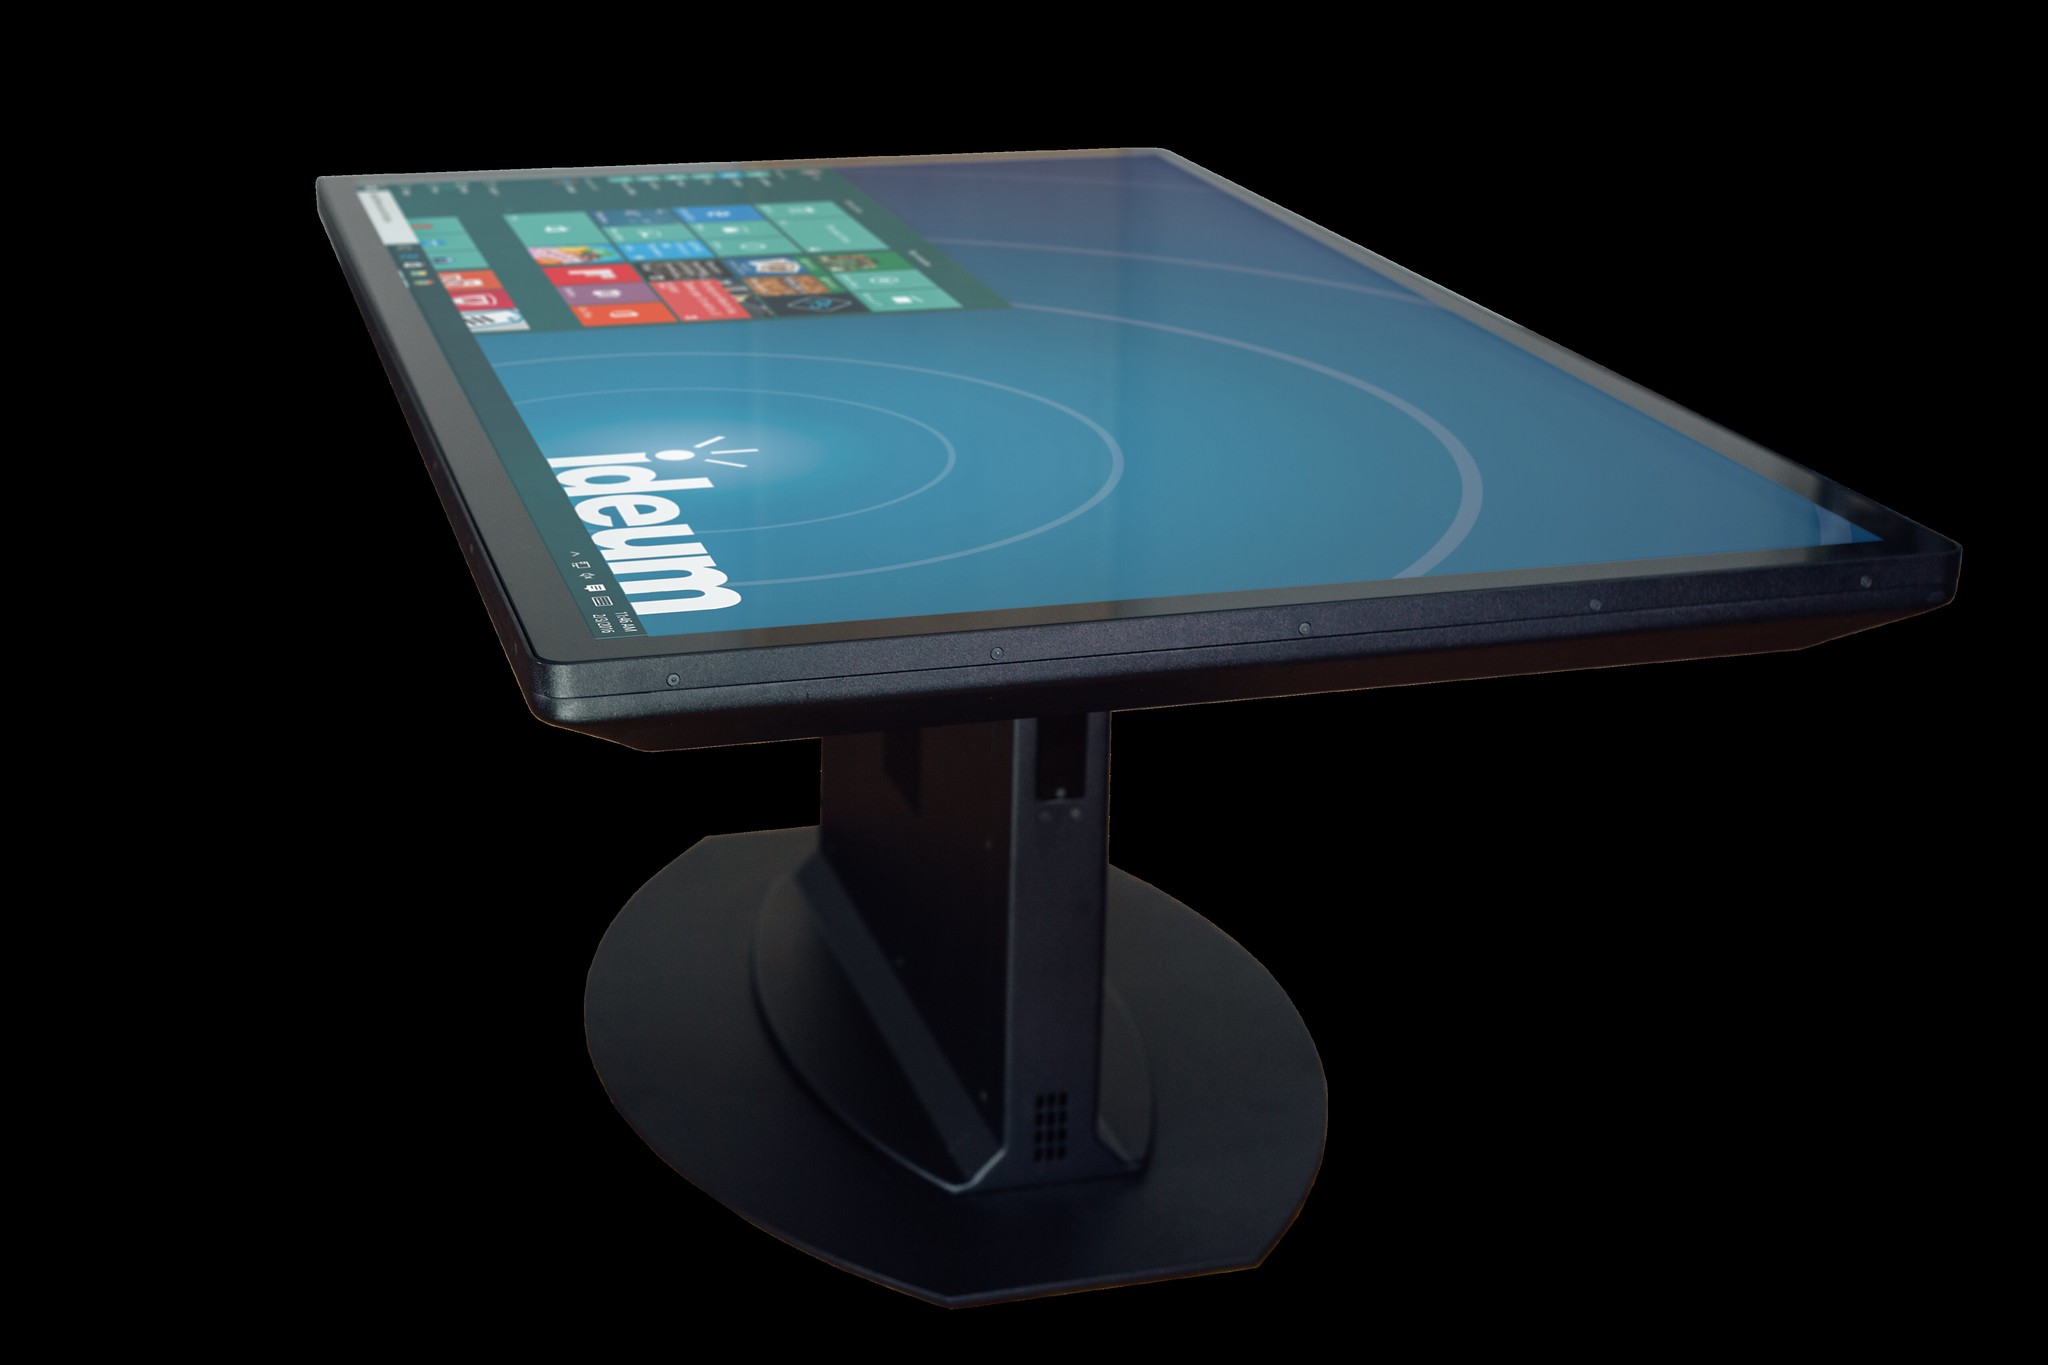 World s First 4K UHD Multitouch Coffee Table